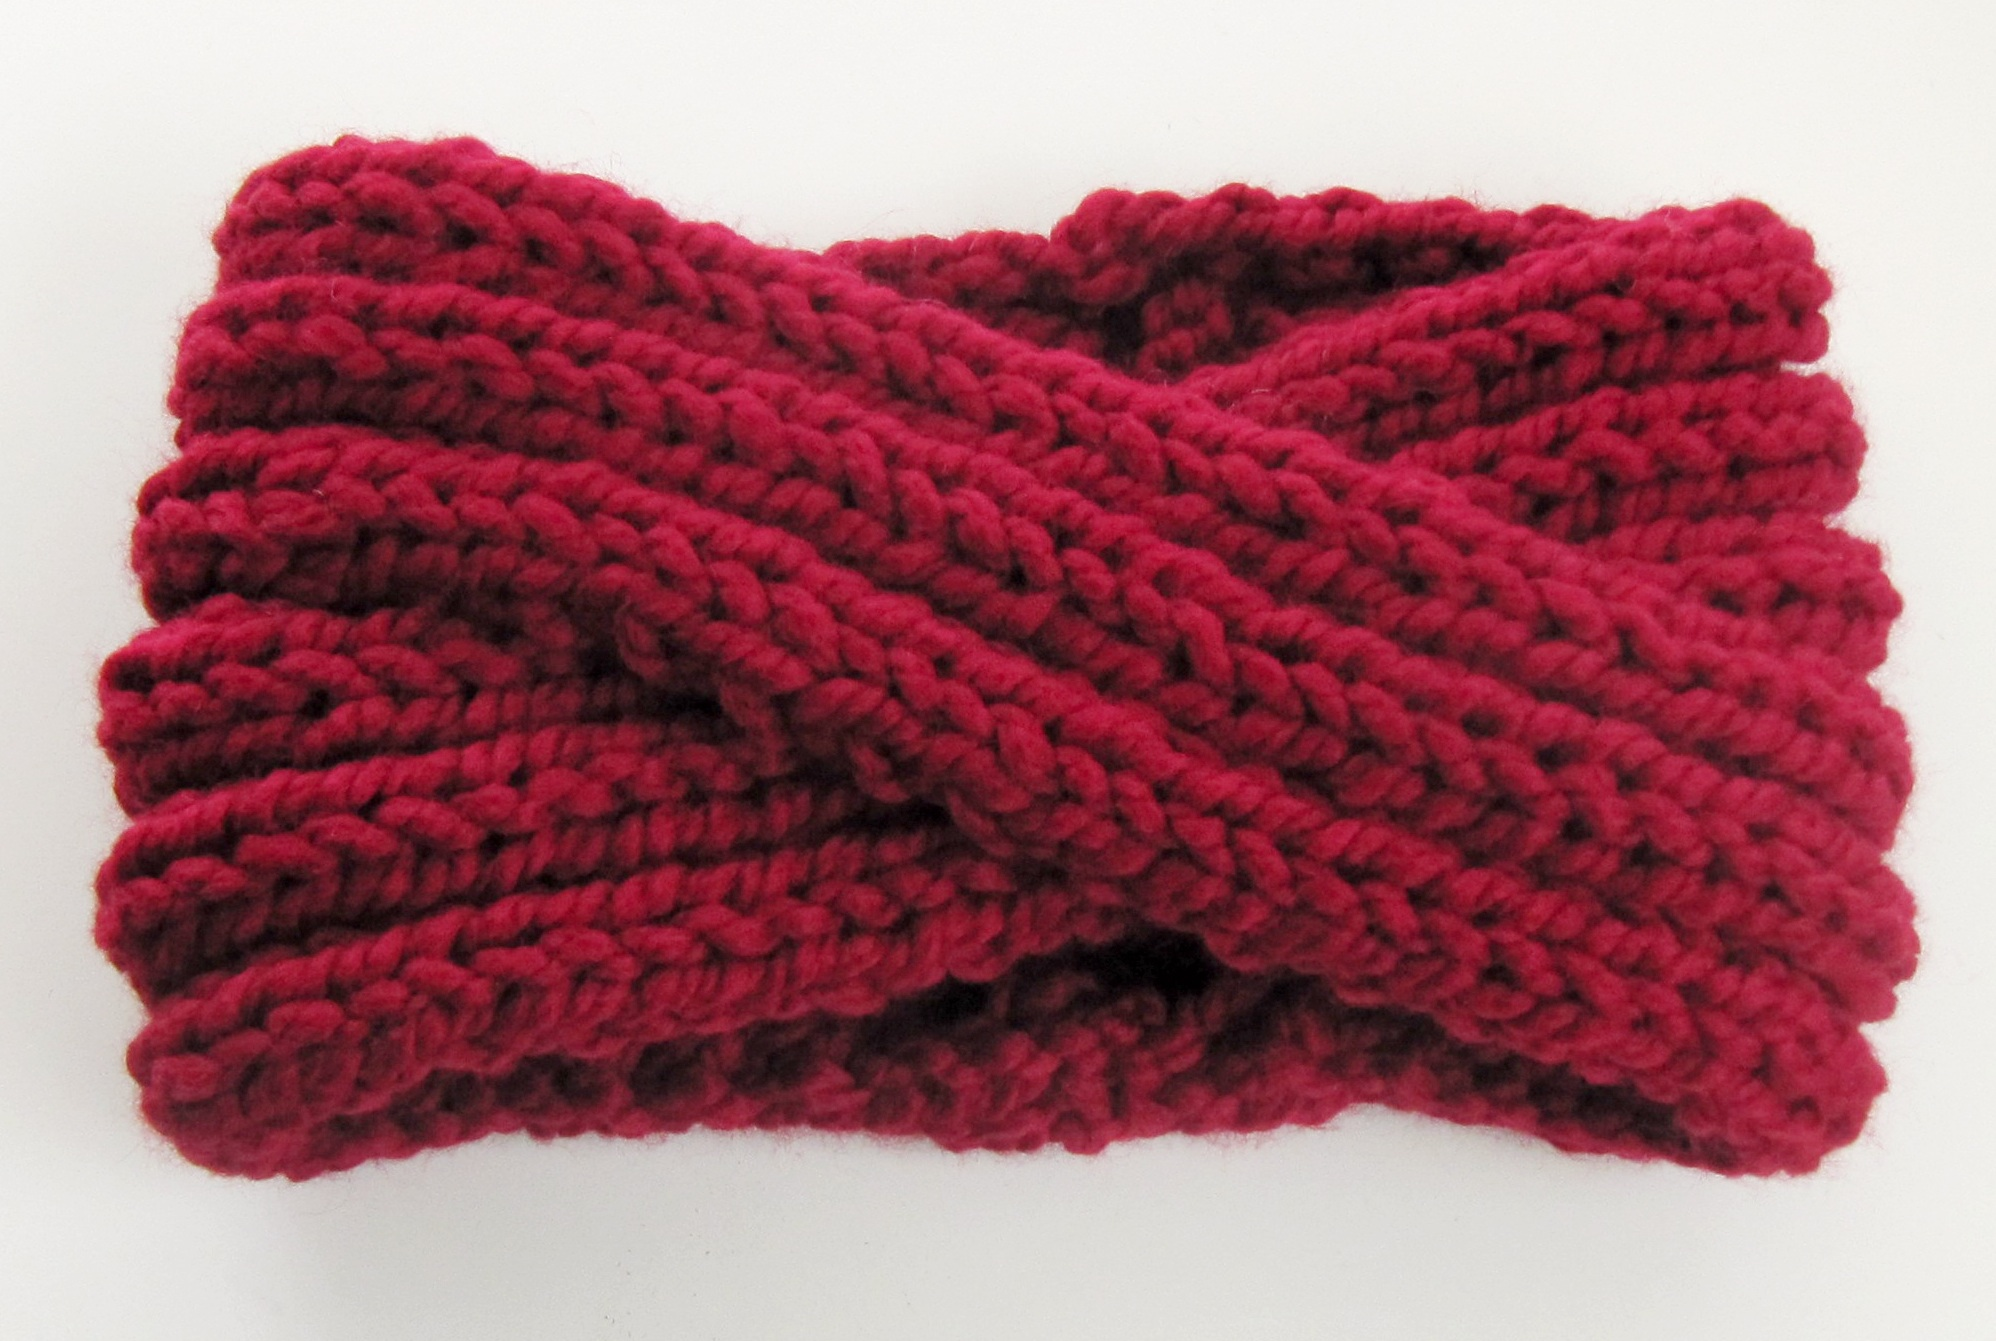 Knitted Ear Warmer Pattern : chunky knit turban headband ear warmer KNITS FOR LIFE